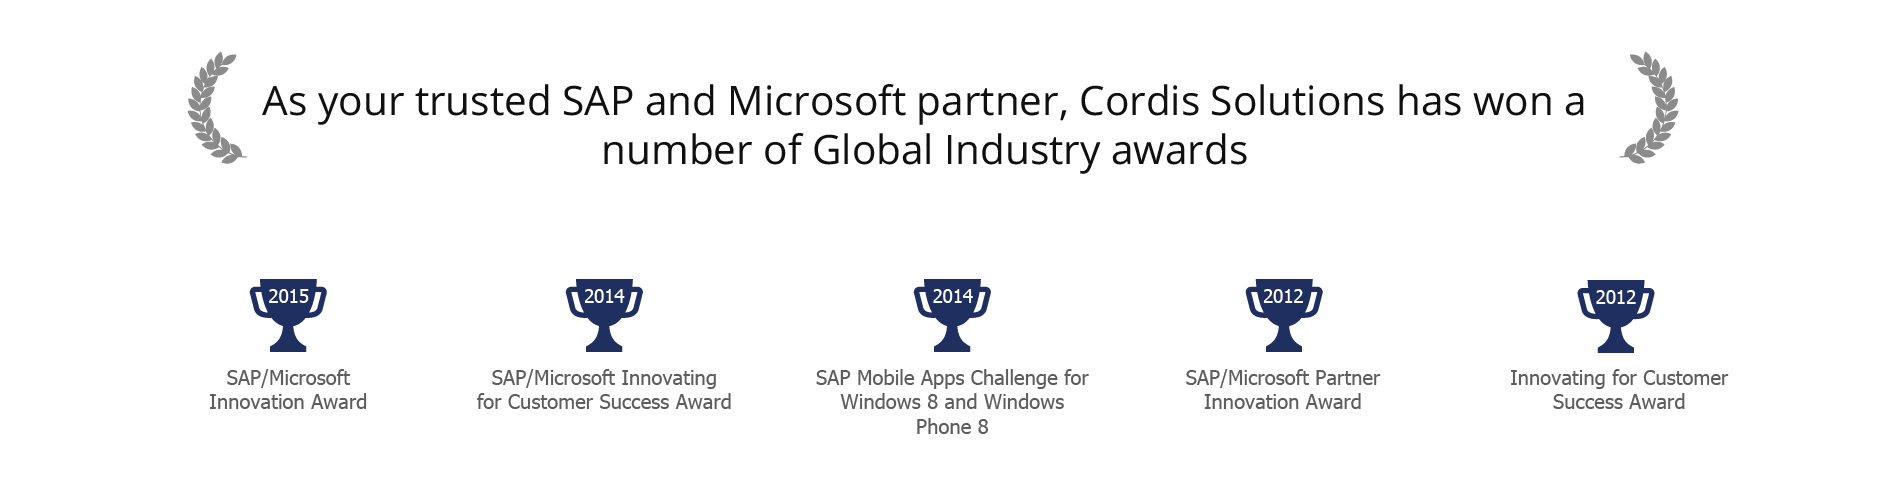 Cordis Solutions Awards